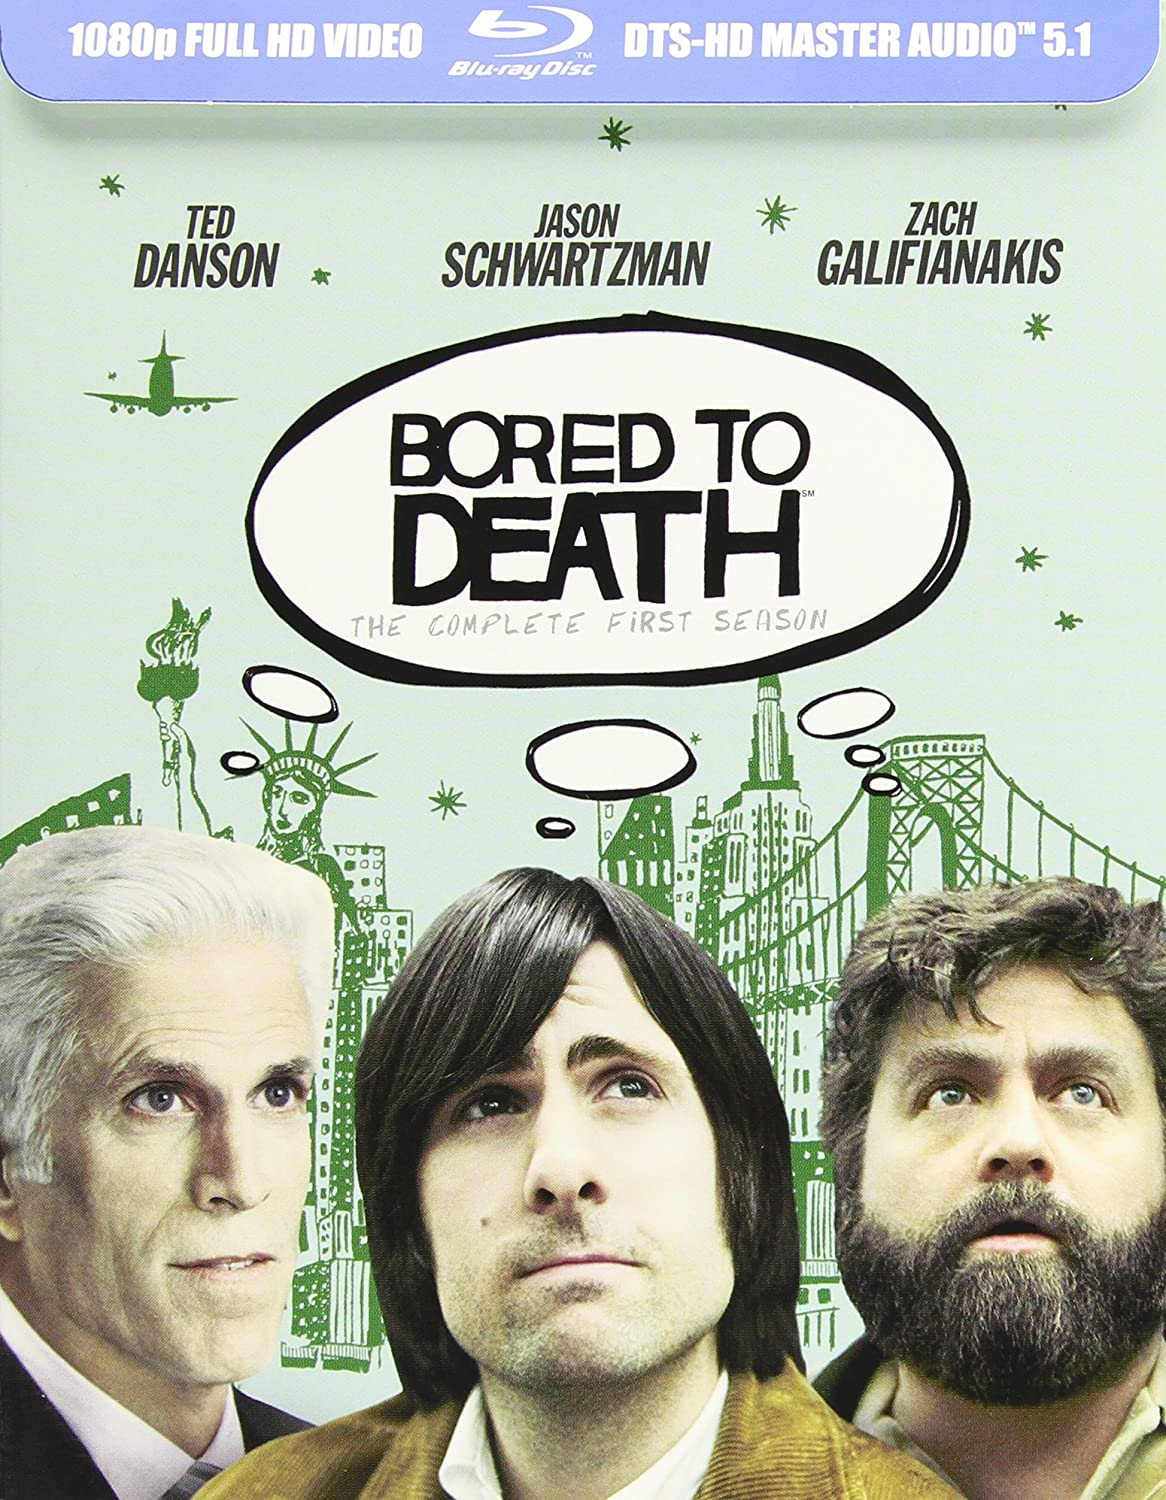 Amazon Com Bored To Death Season 1 Blu Ray Jason Schwartzman Zach Galifianakis Movies Tv